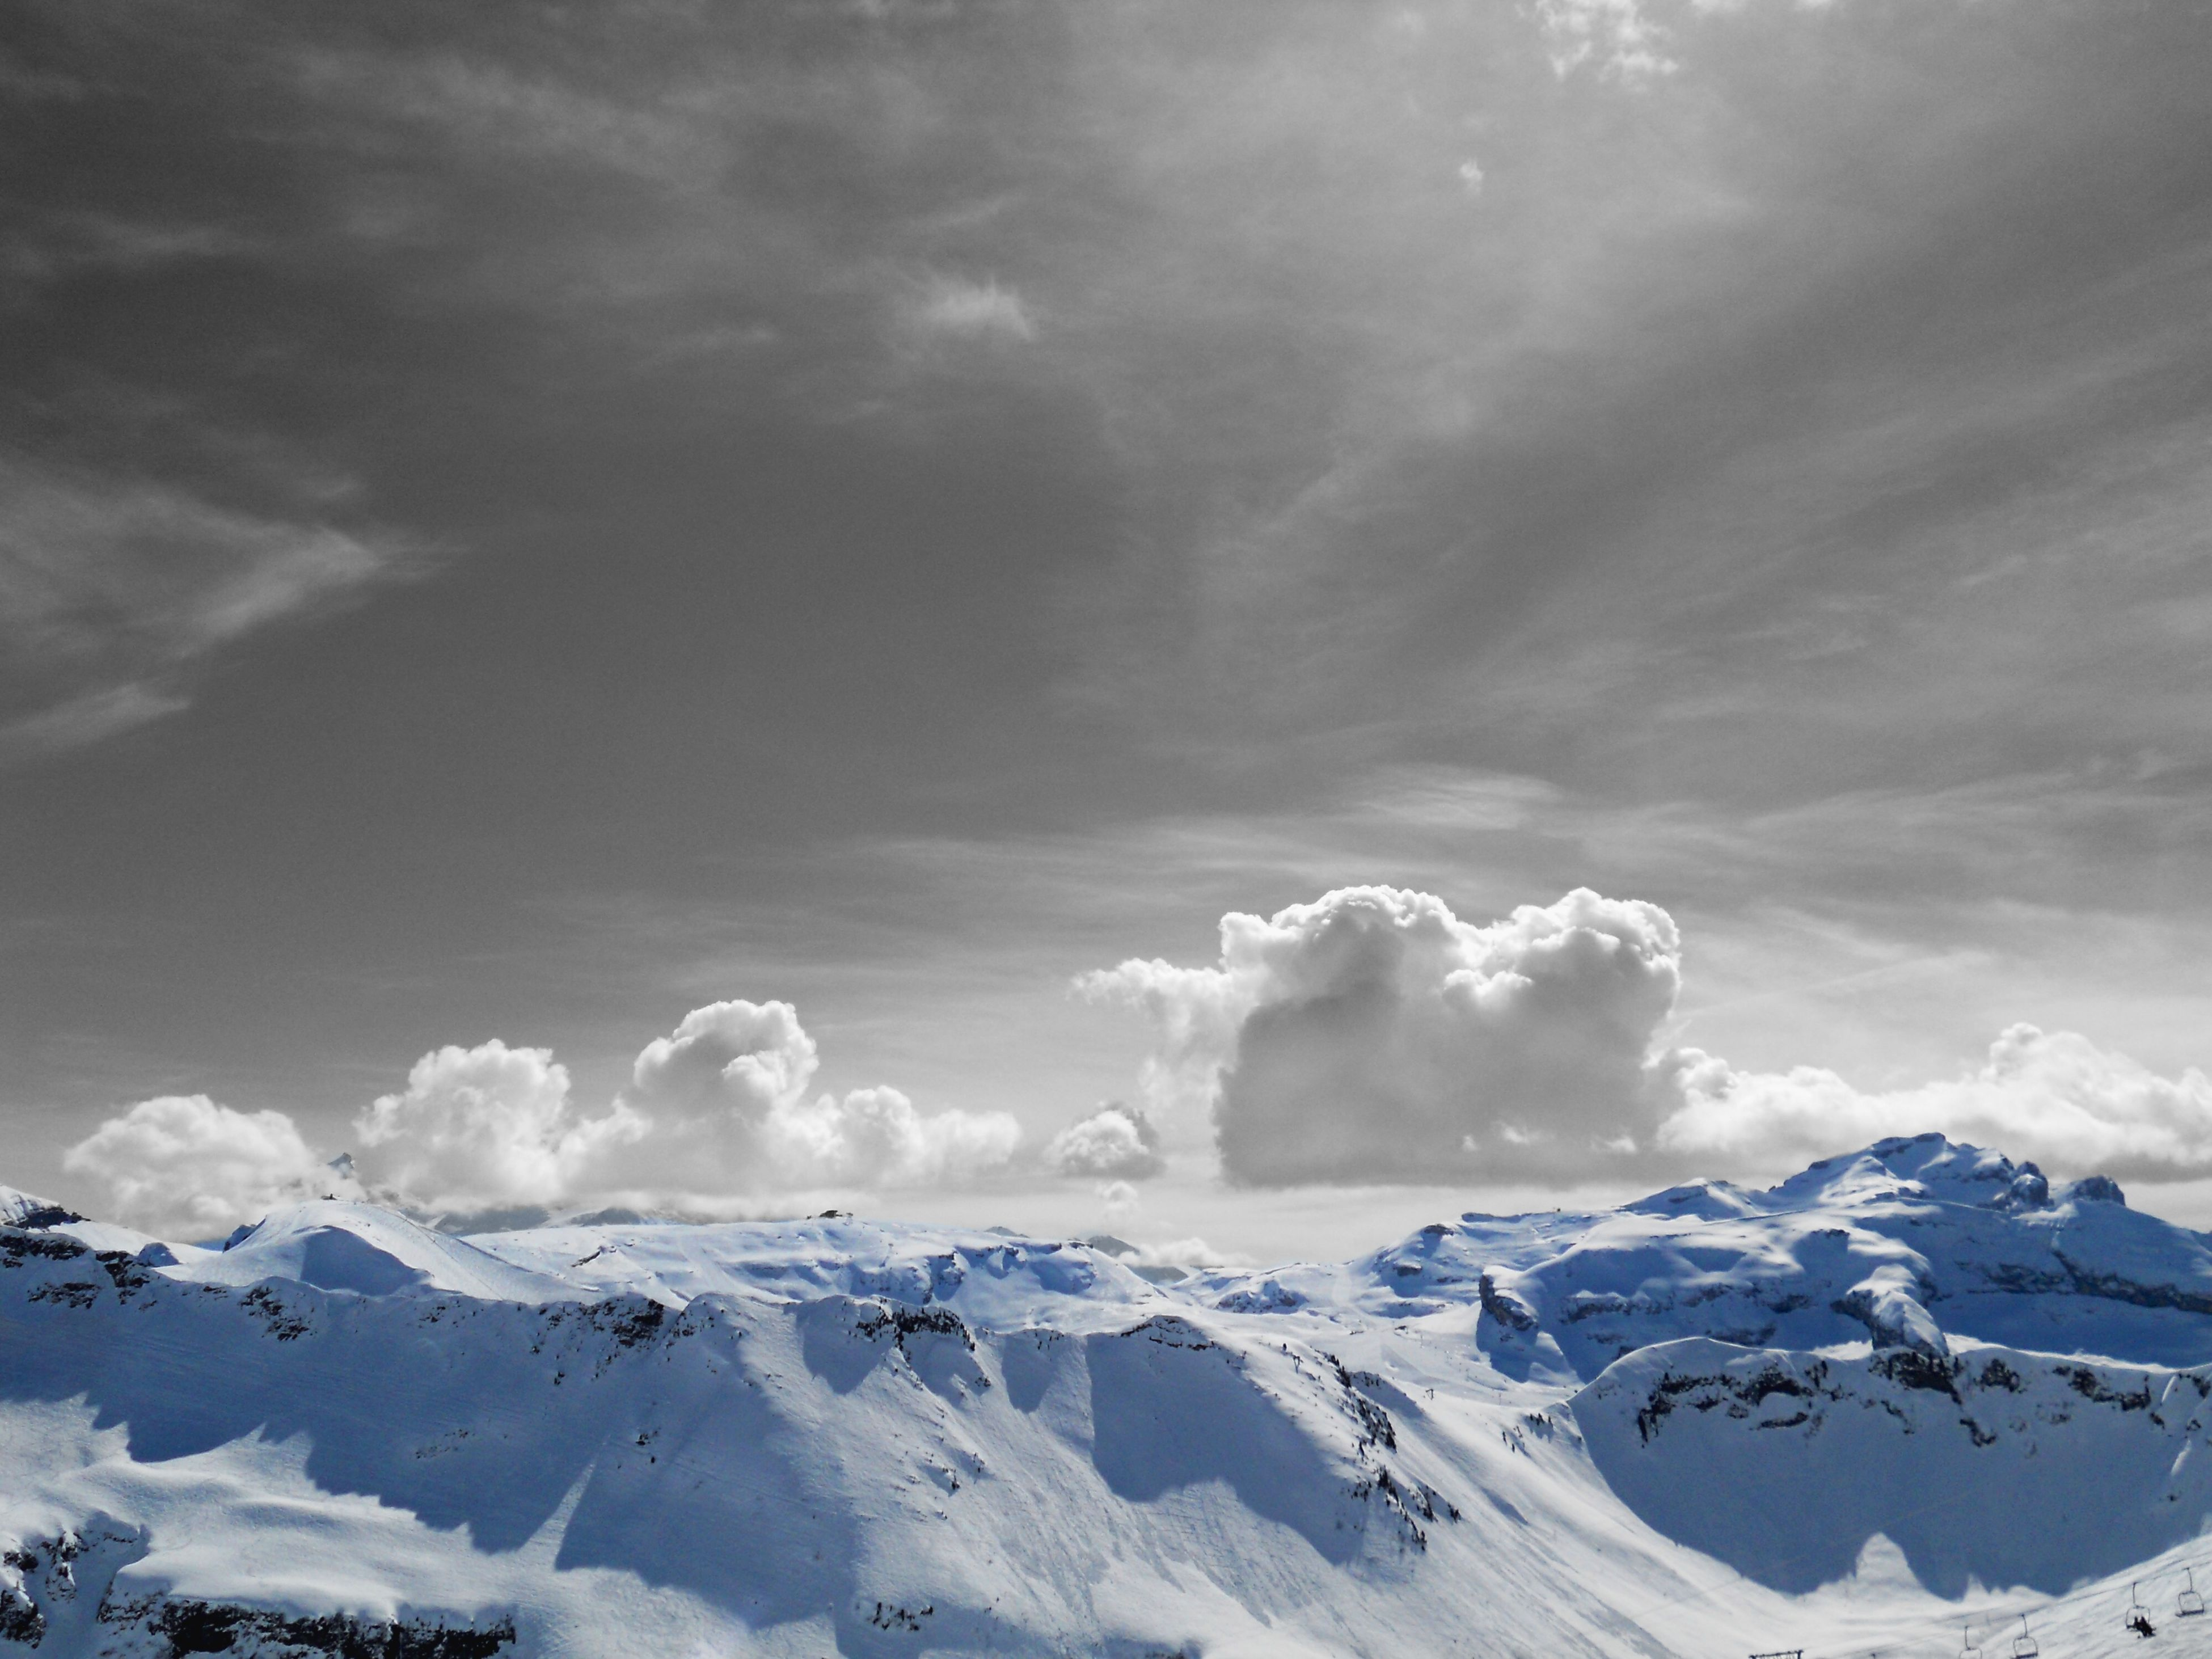 snow, winter, cold temperature, mountain, weather, season, scenics, tranquil scene, sky, beauty in nature, tranquility, snowcapped mountain, mountain range, cloud - sky, nature, covering, landscape, white color, cloudy, idyllic